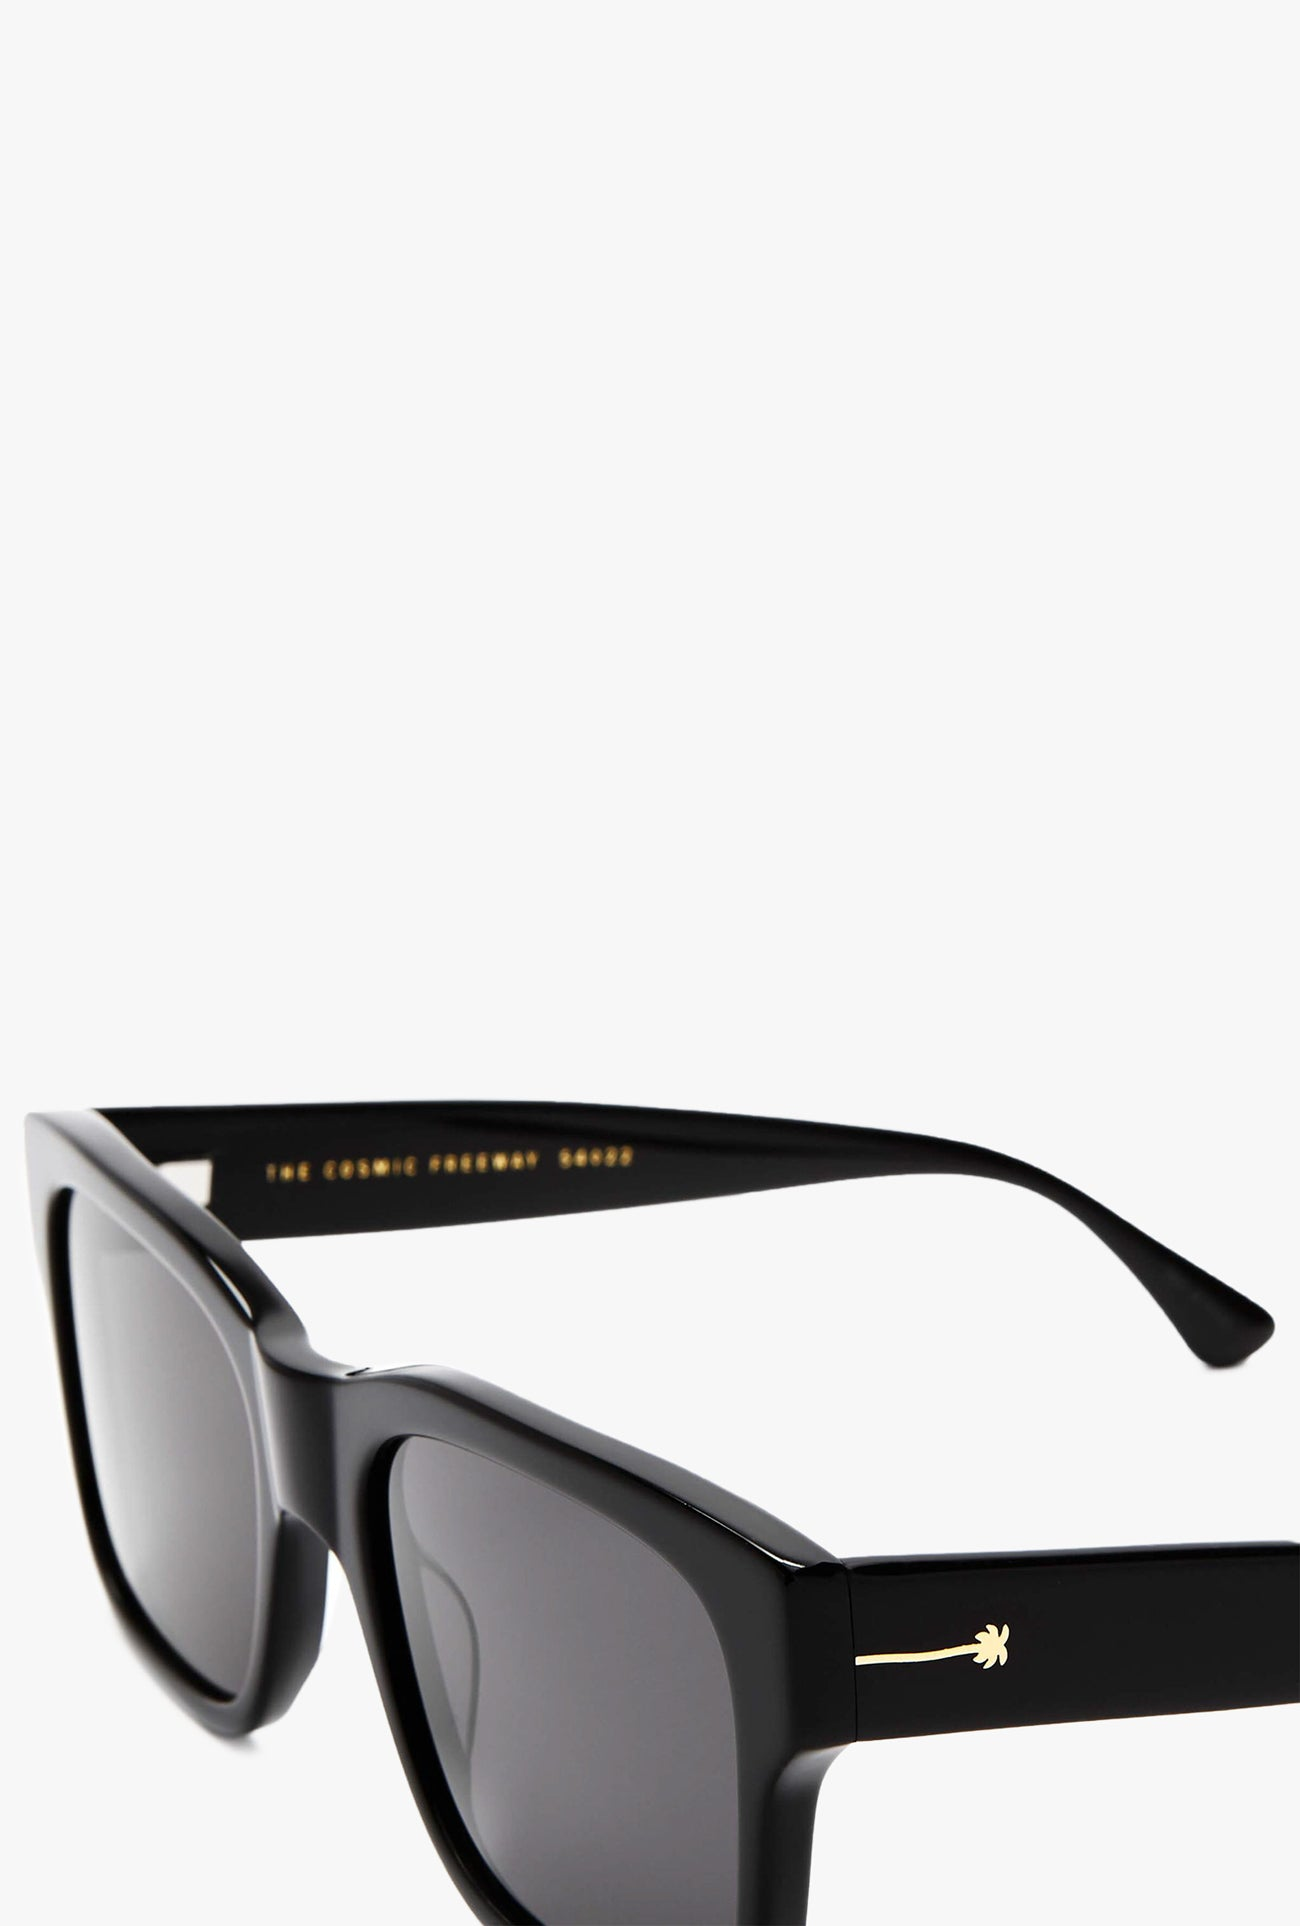 The Cosmic Freeway Sunglasses